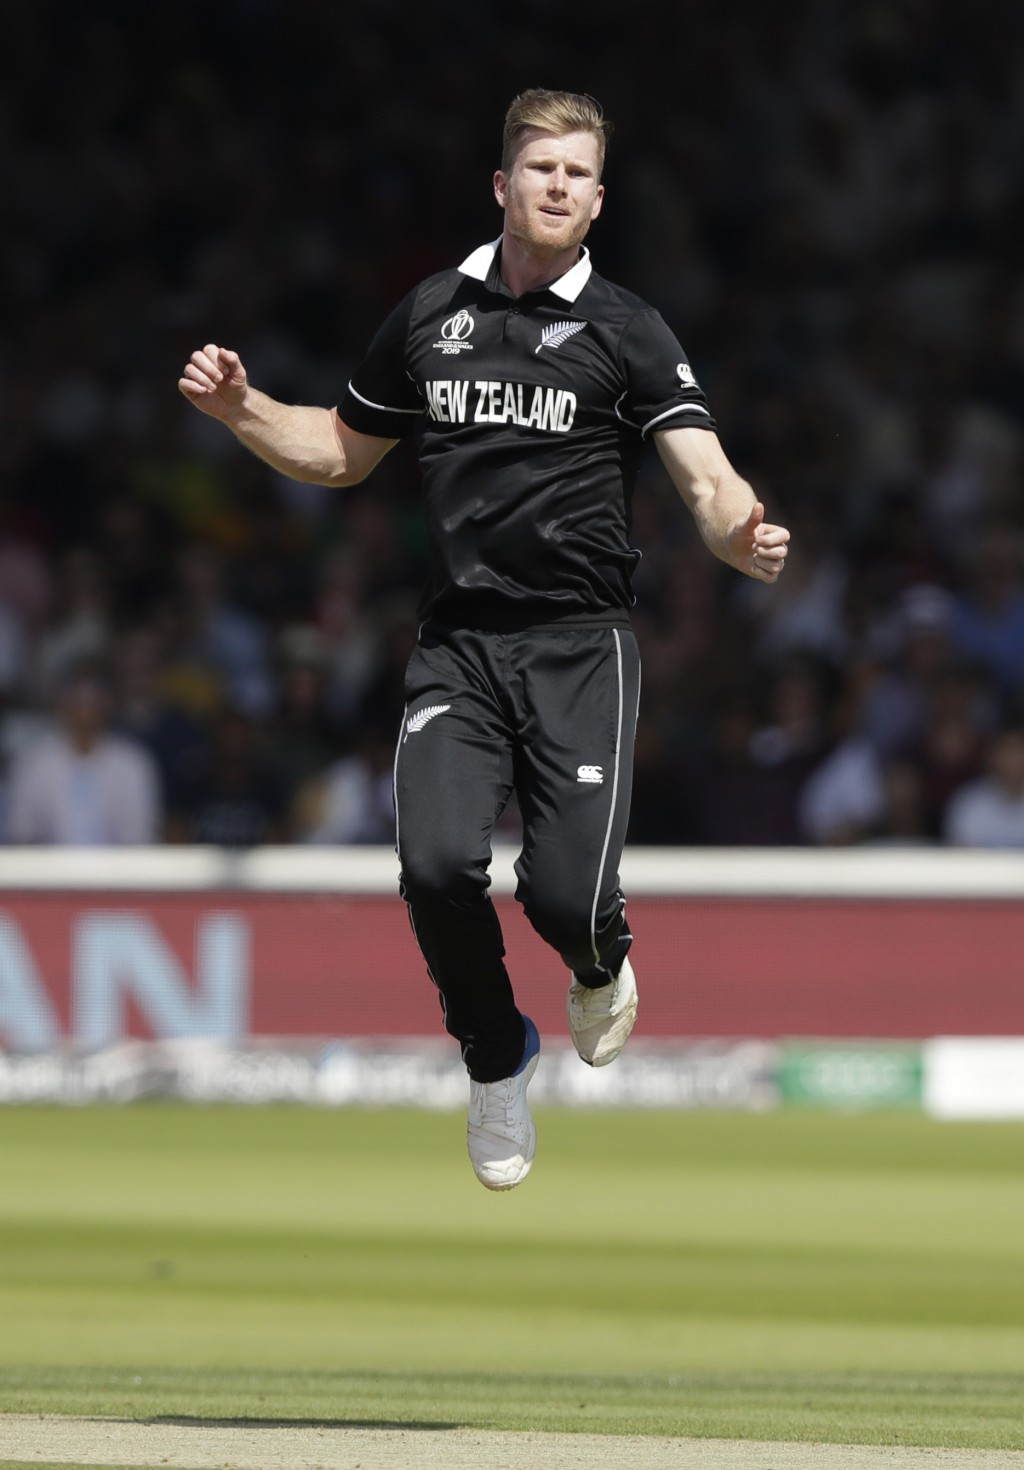 New Zealand's James Neesham reacts after almost taking the wicket of Australia's Usman Khawajaduring the Cricket World Cup match between New Zealand a...